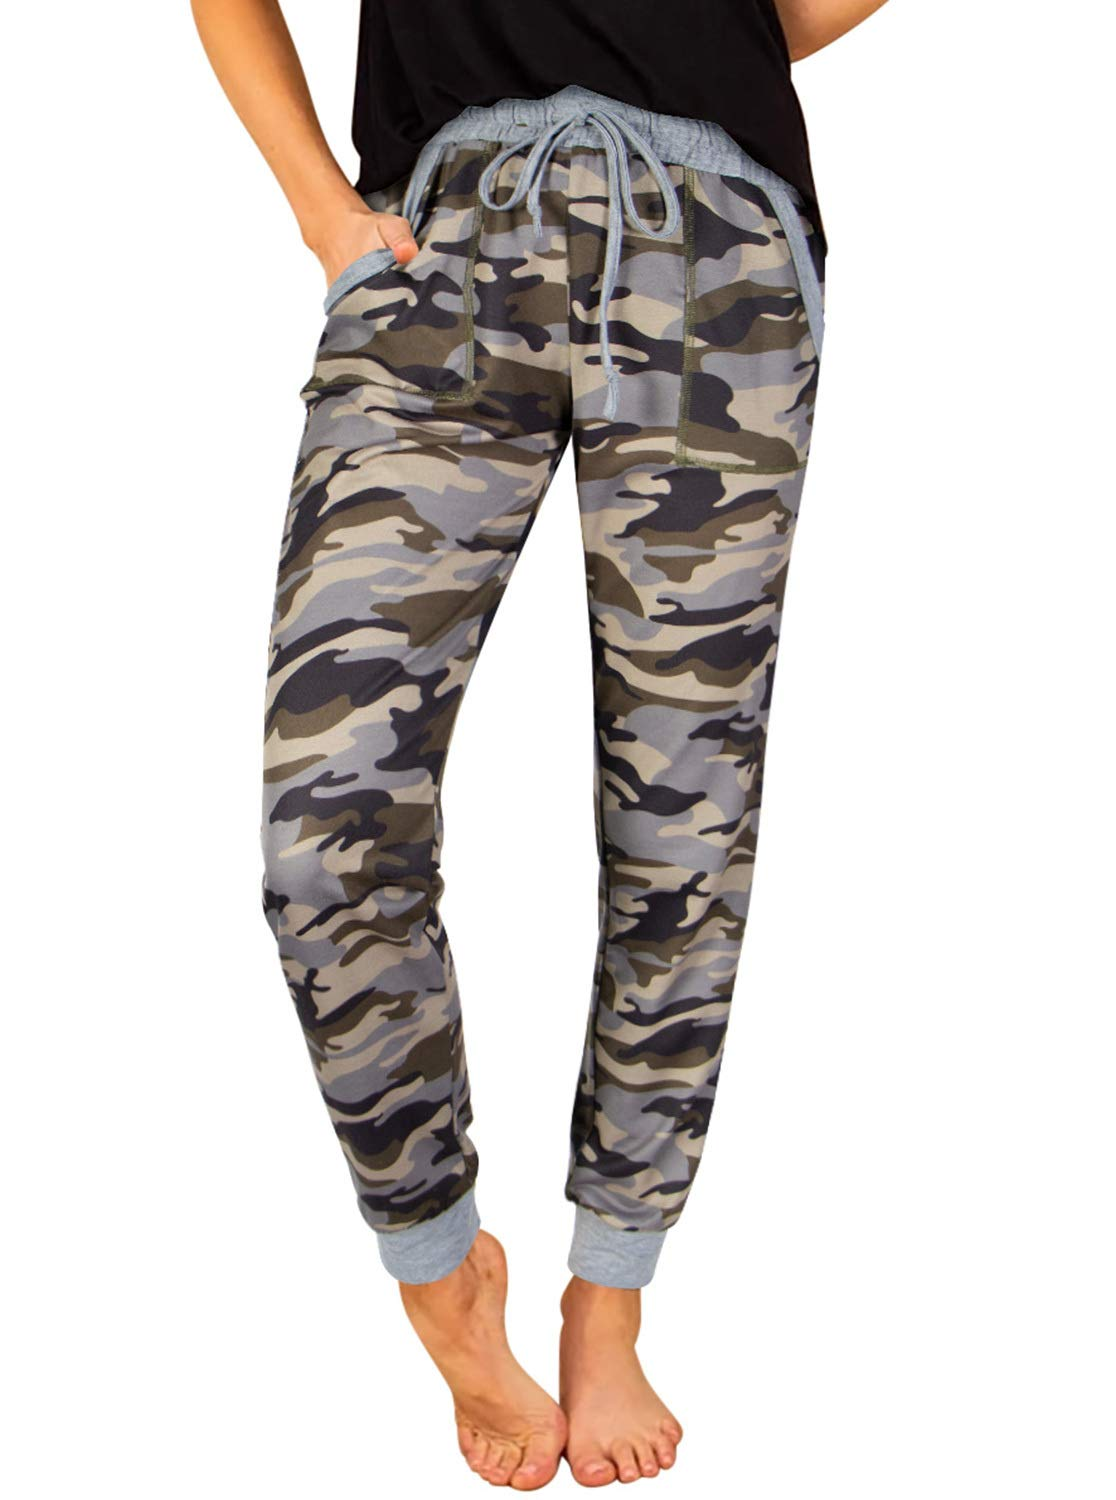 NIMIN Womens Jogger Sweatpants Drawstring Elastic Waist Comfy Stretchy Workout Leopard Pants with Pockets